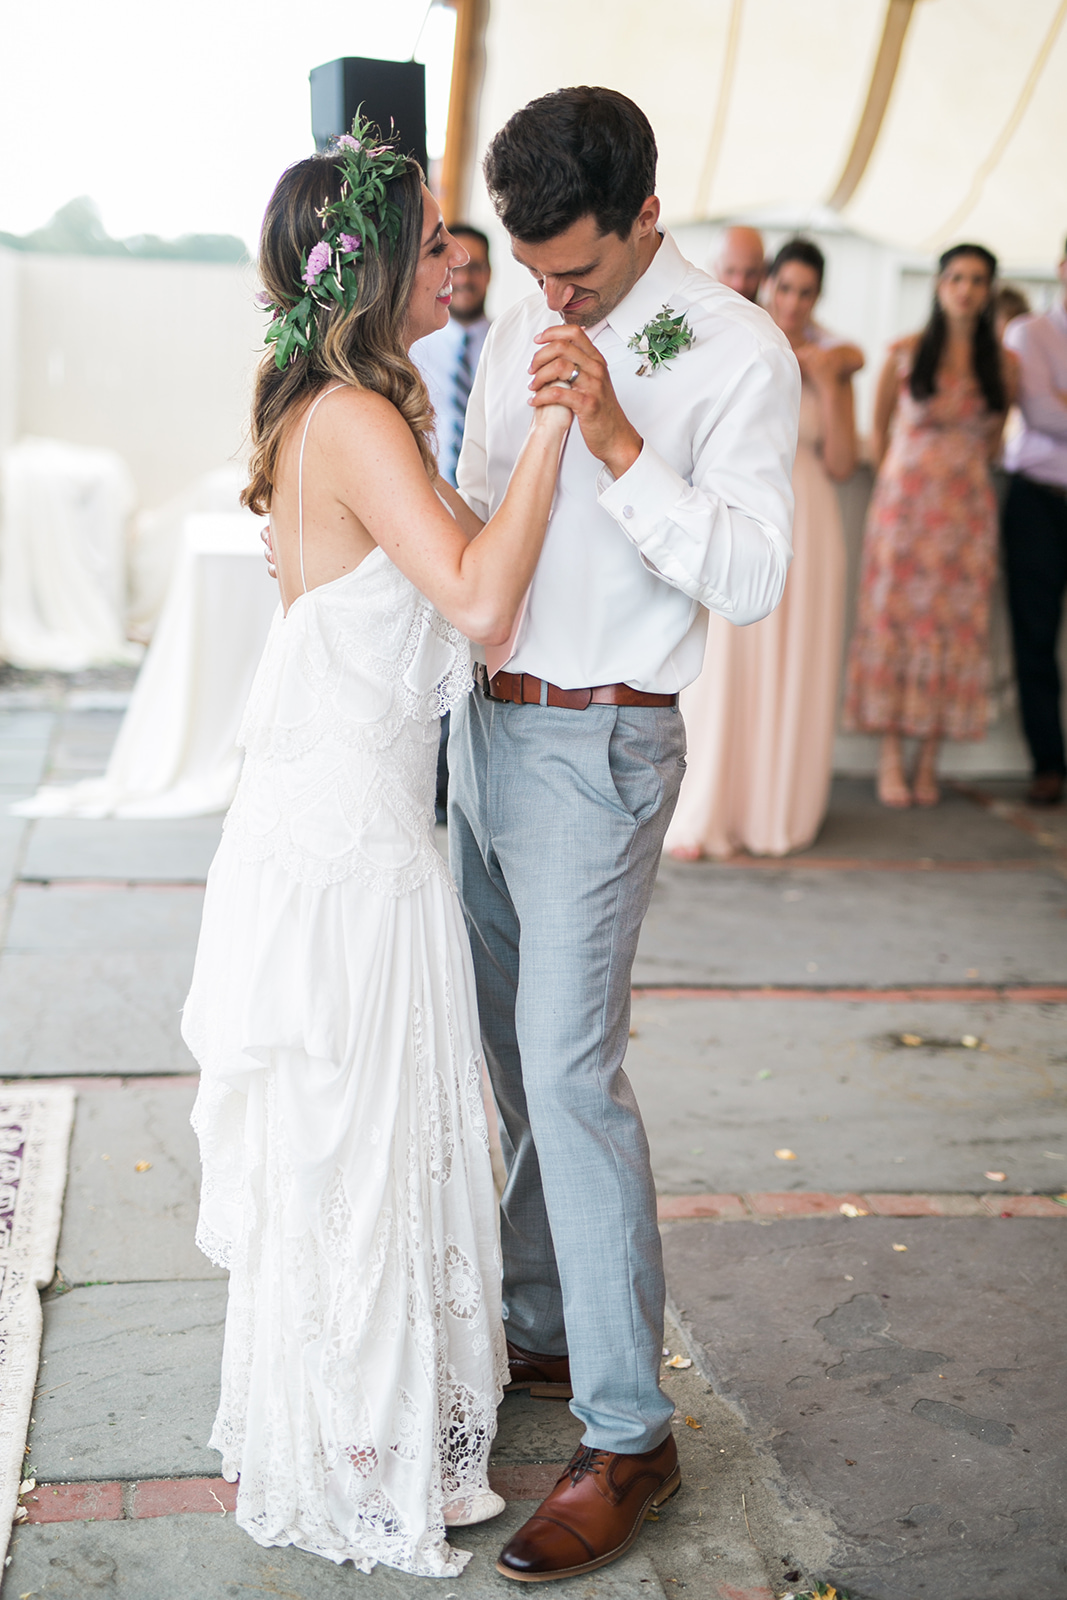 Outdoor tented wedding call for having a dance floor. Which one do you have or will you need? Read Pearl Weddings & Events Blog for more information. - Pearl Weddings & Events